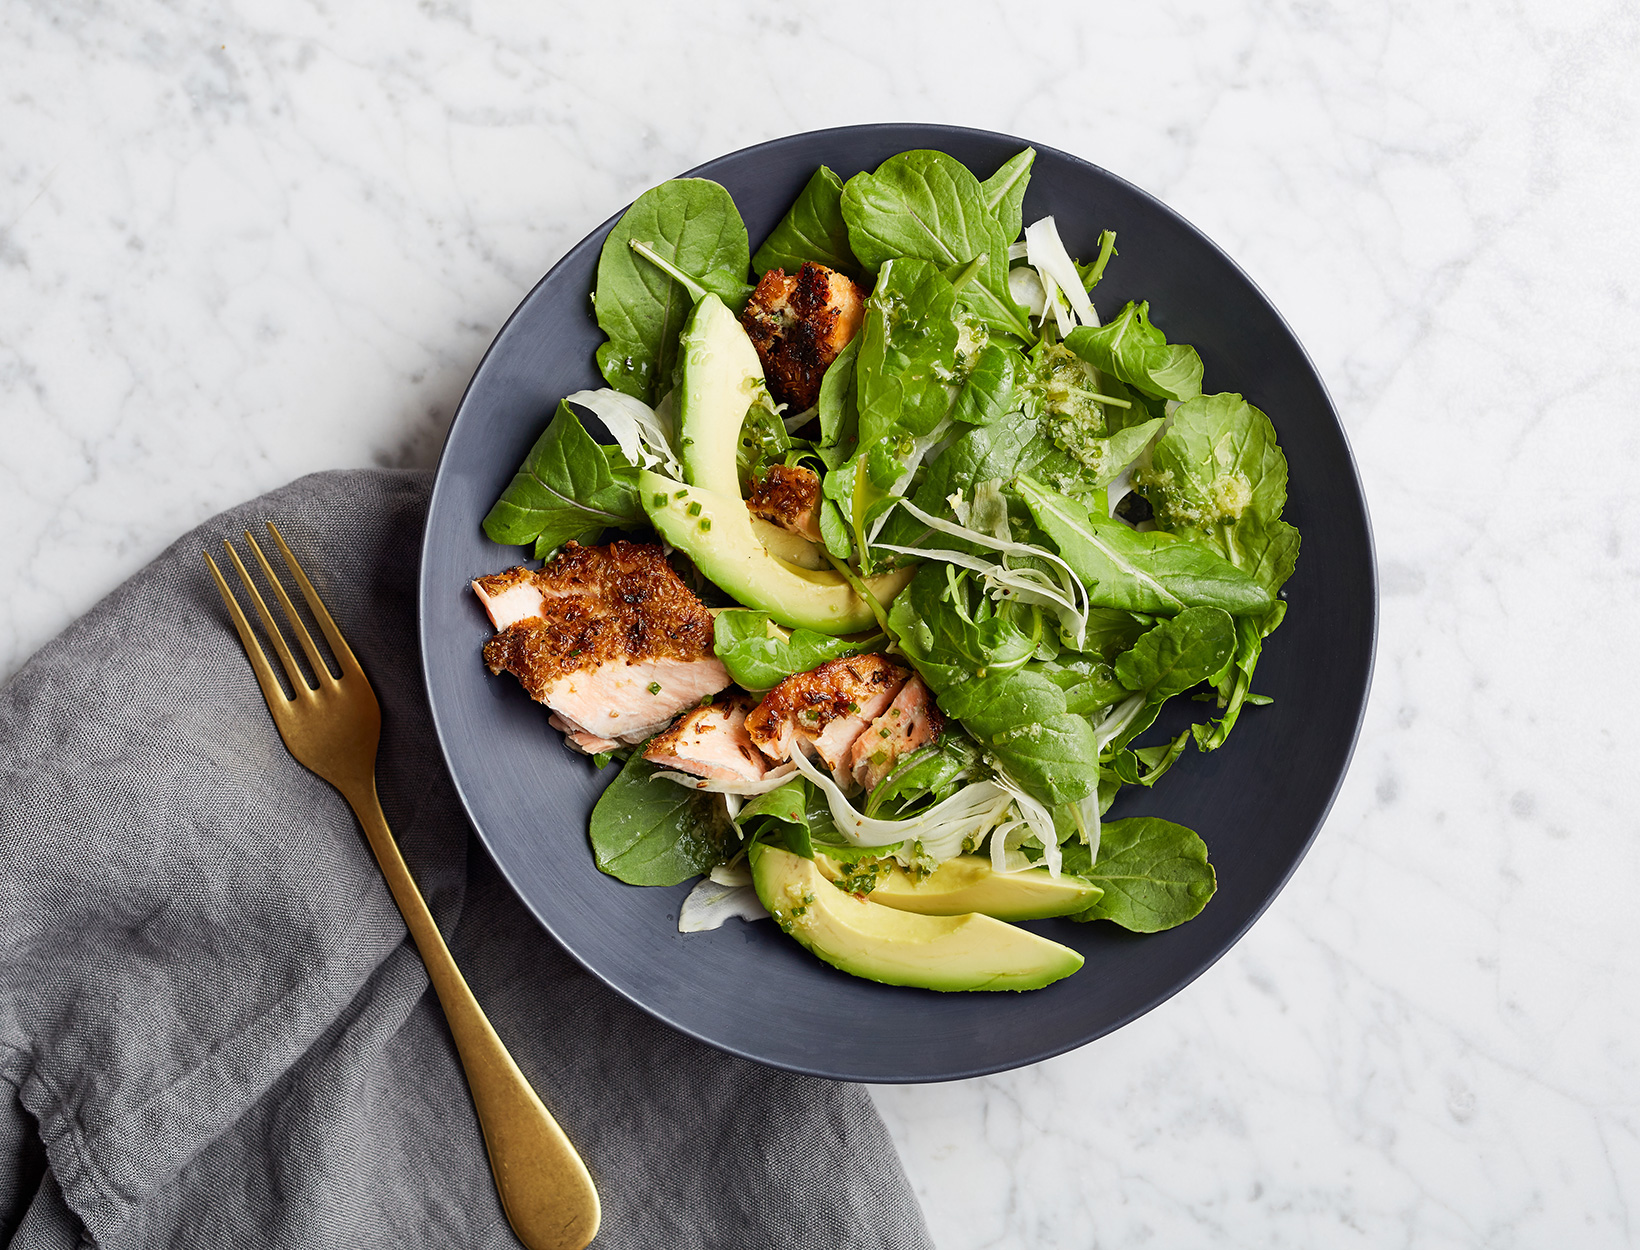 Arugula Salad with Fennel Crusted Salmon and Avocado